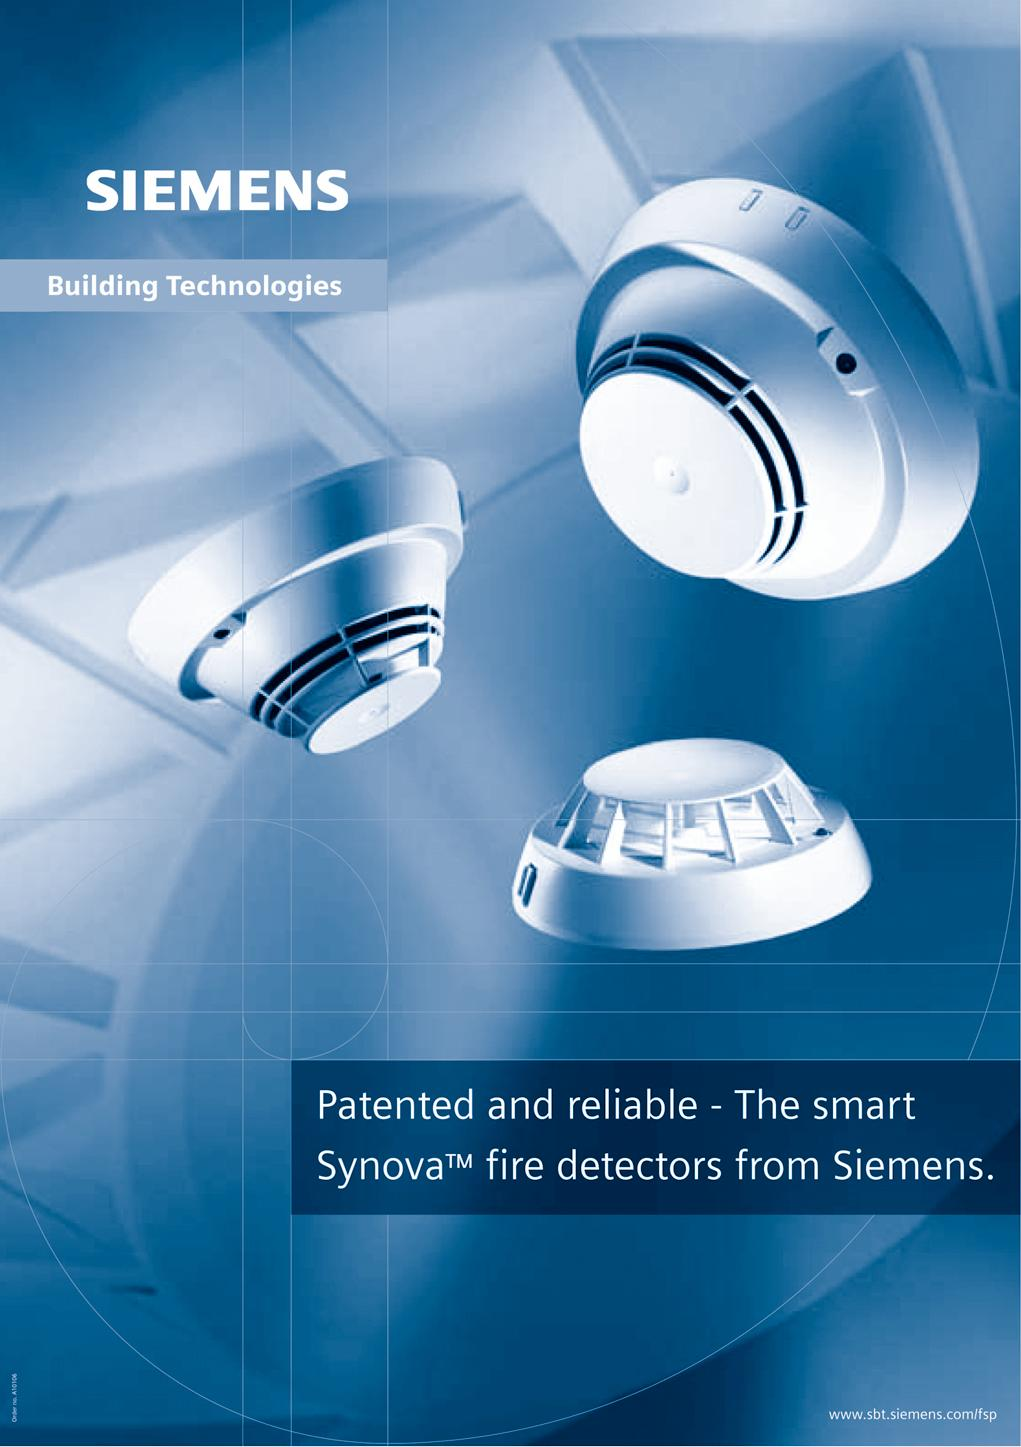 Building Technologies Pdf System Ebl128 Panasonic Electric Works Europe Ag Synova Tm Installation Guidelines F 2005 Siemens